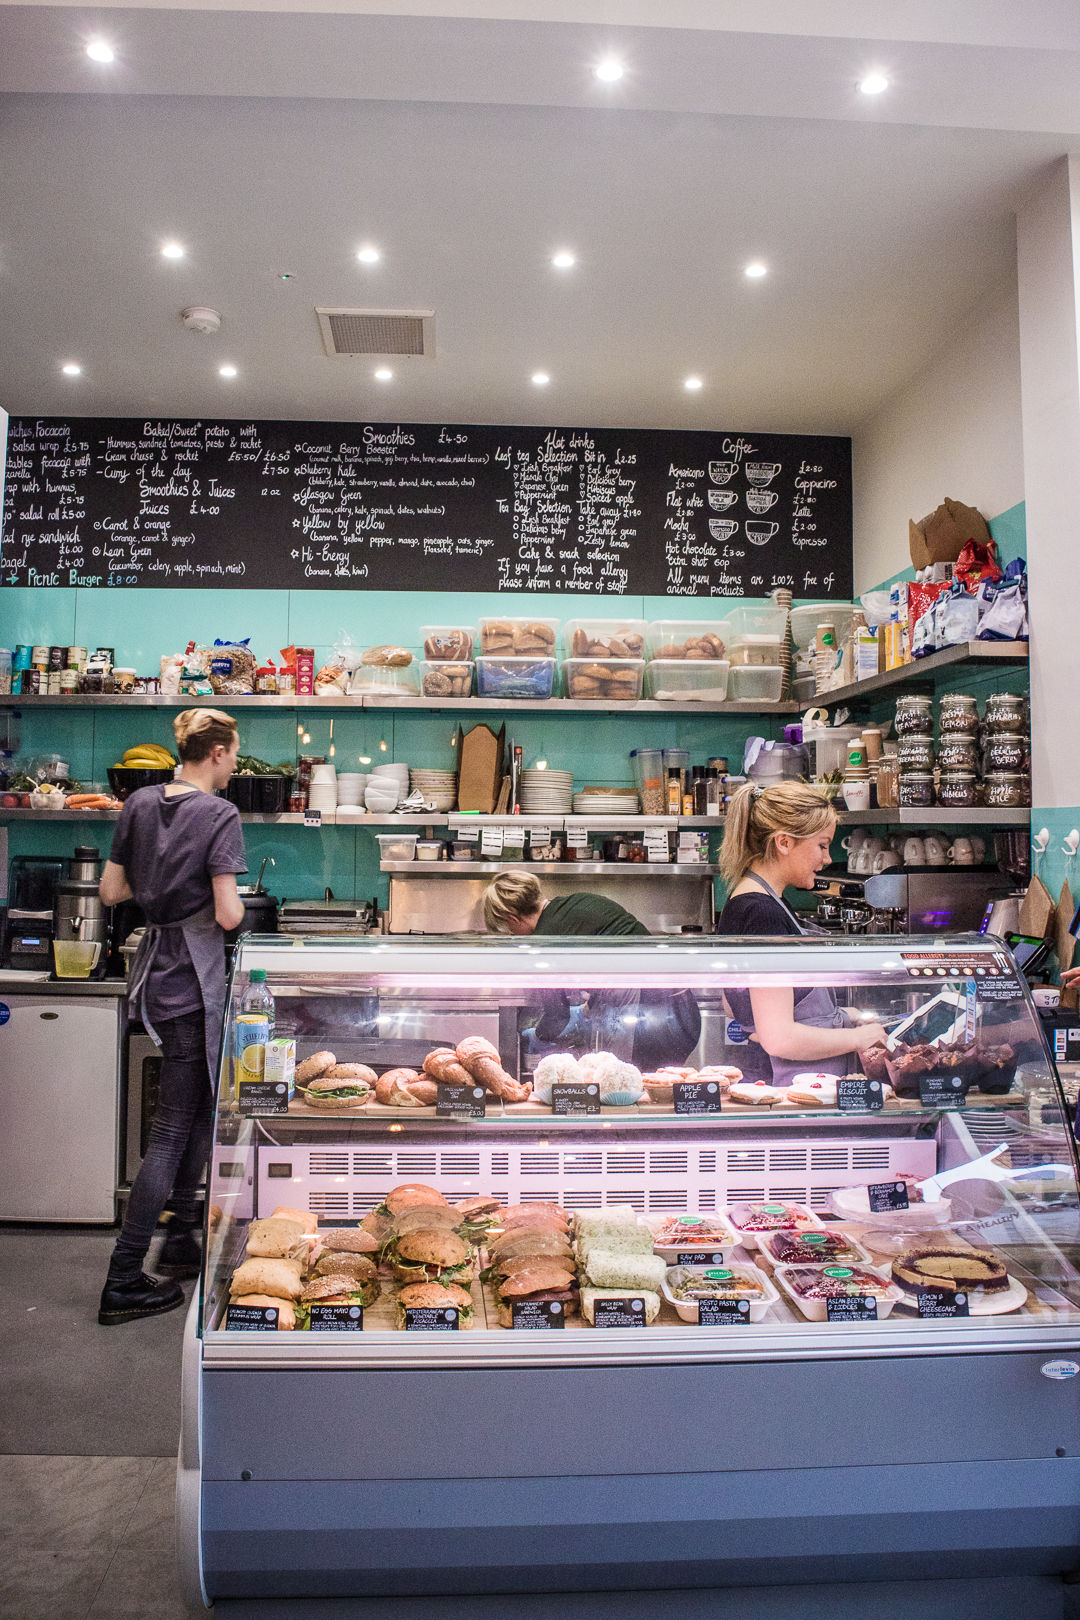 Picnic Glasgow is the vegan cafe that the Merchant City area of the city centre needed! Run by Michelle Morrow it fills the area with healthy and ethical breakfast and lunch options and closes a gap in the fast-food oriented vegan restaurant scene of the city centre!